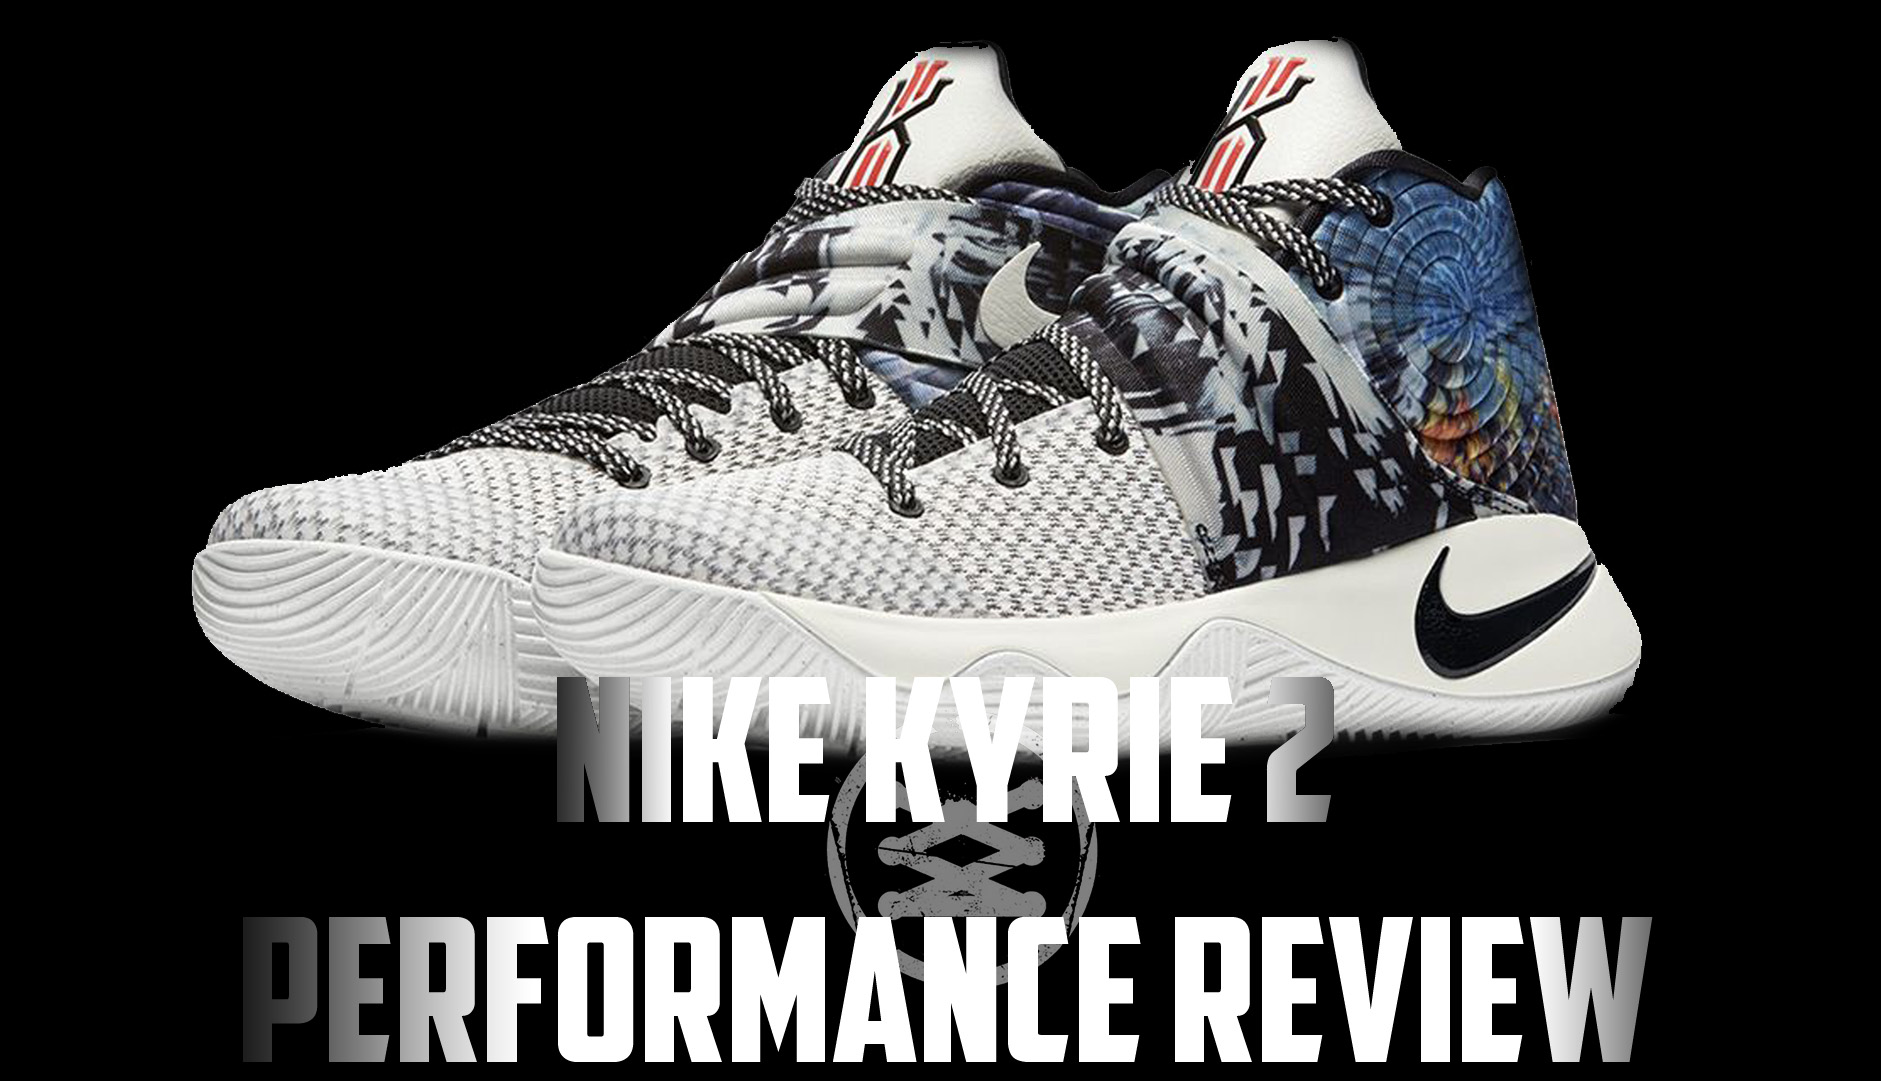 Nike Kyrie 2 Performance Review Main